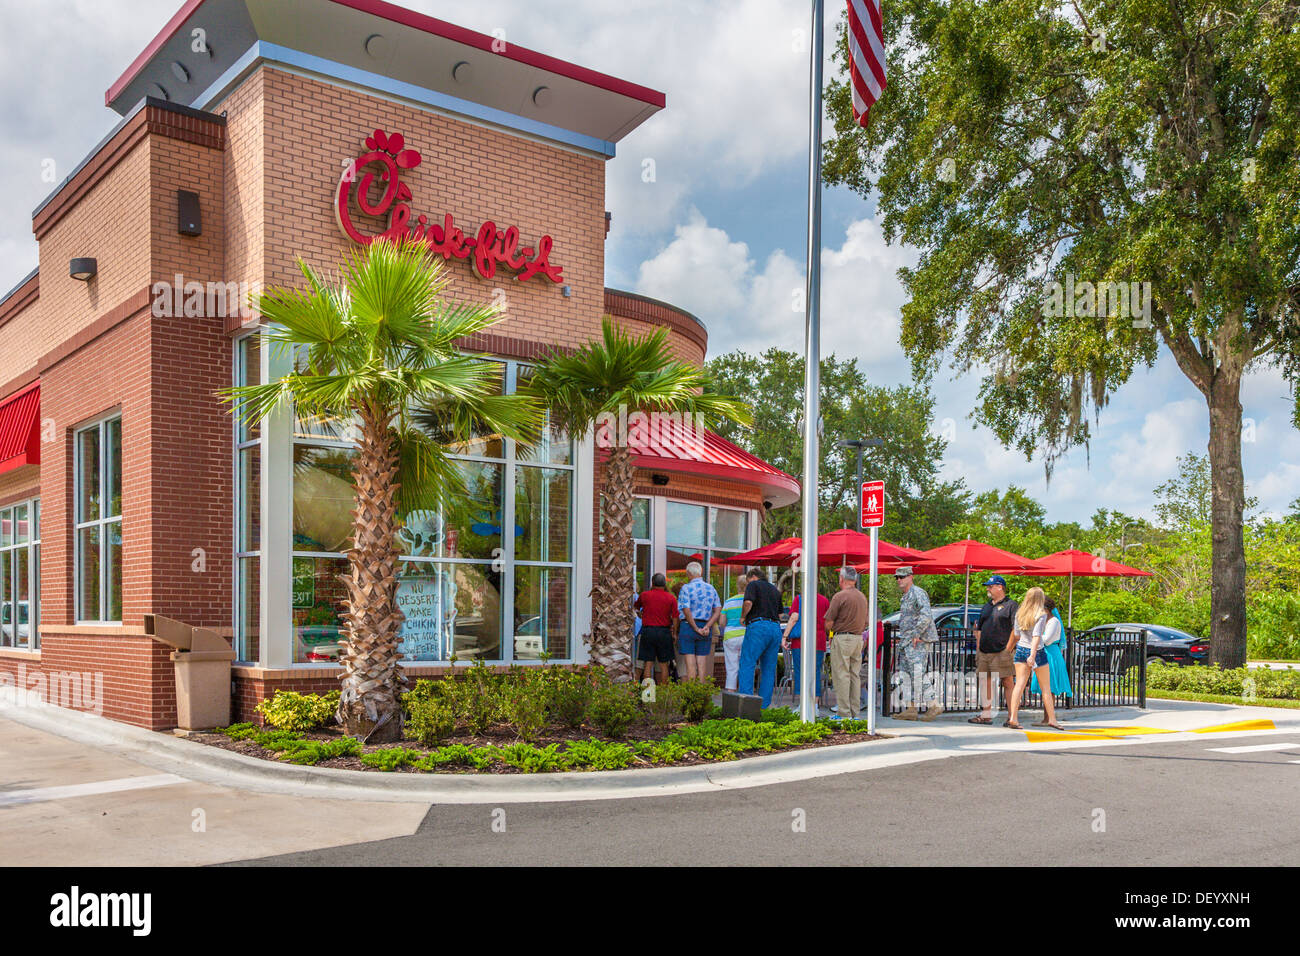 Customers line up out the door at the Chick-fil-a fast food restaurant in Ocala, Florida in support of Christian values - Stock Image